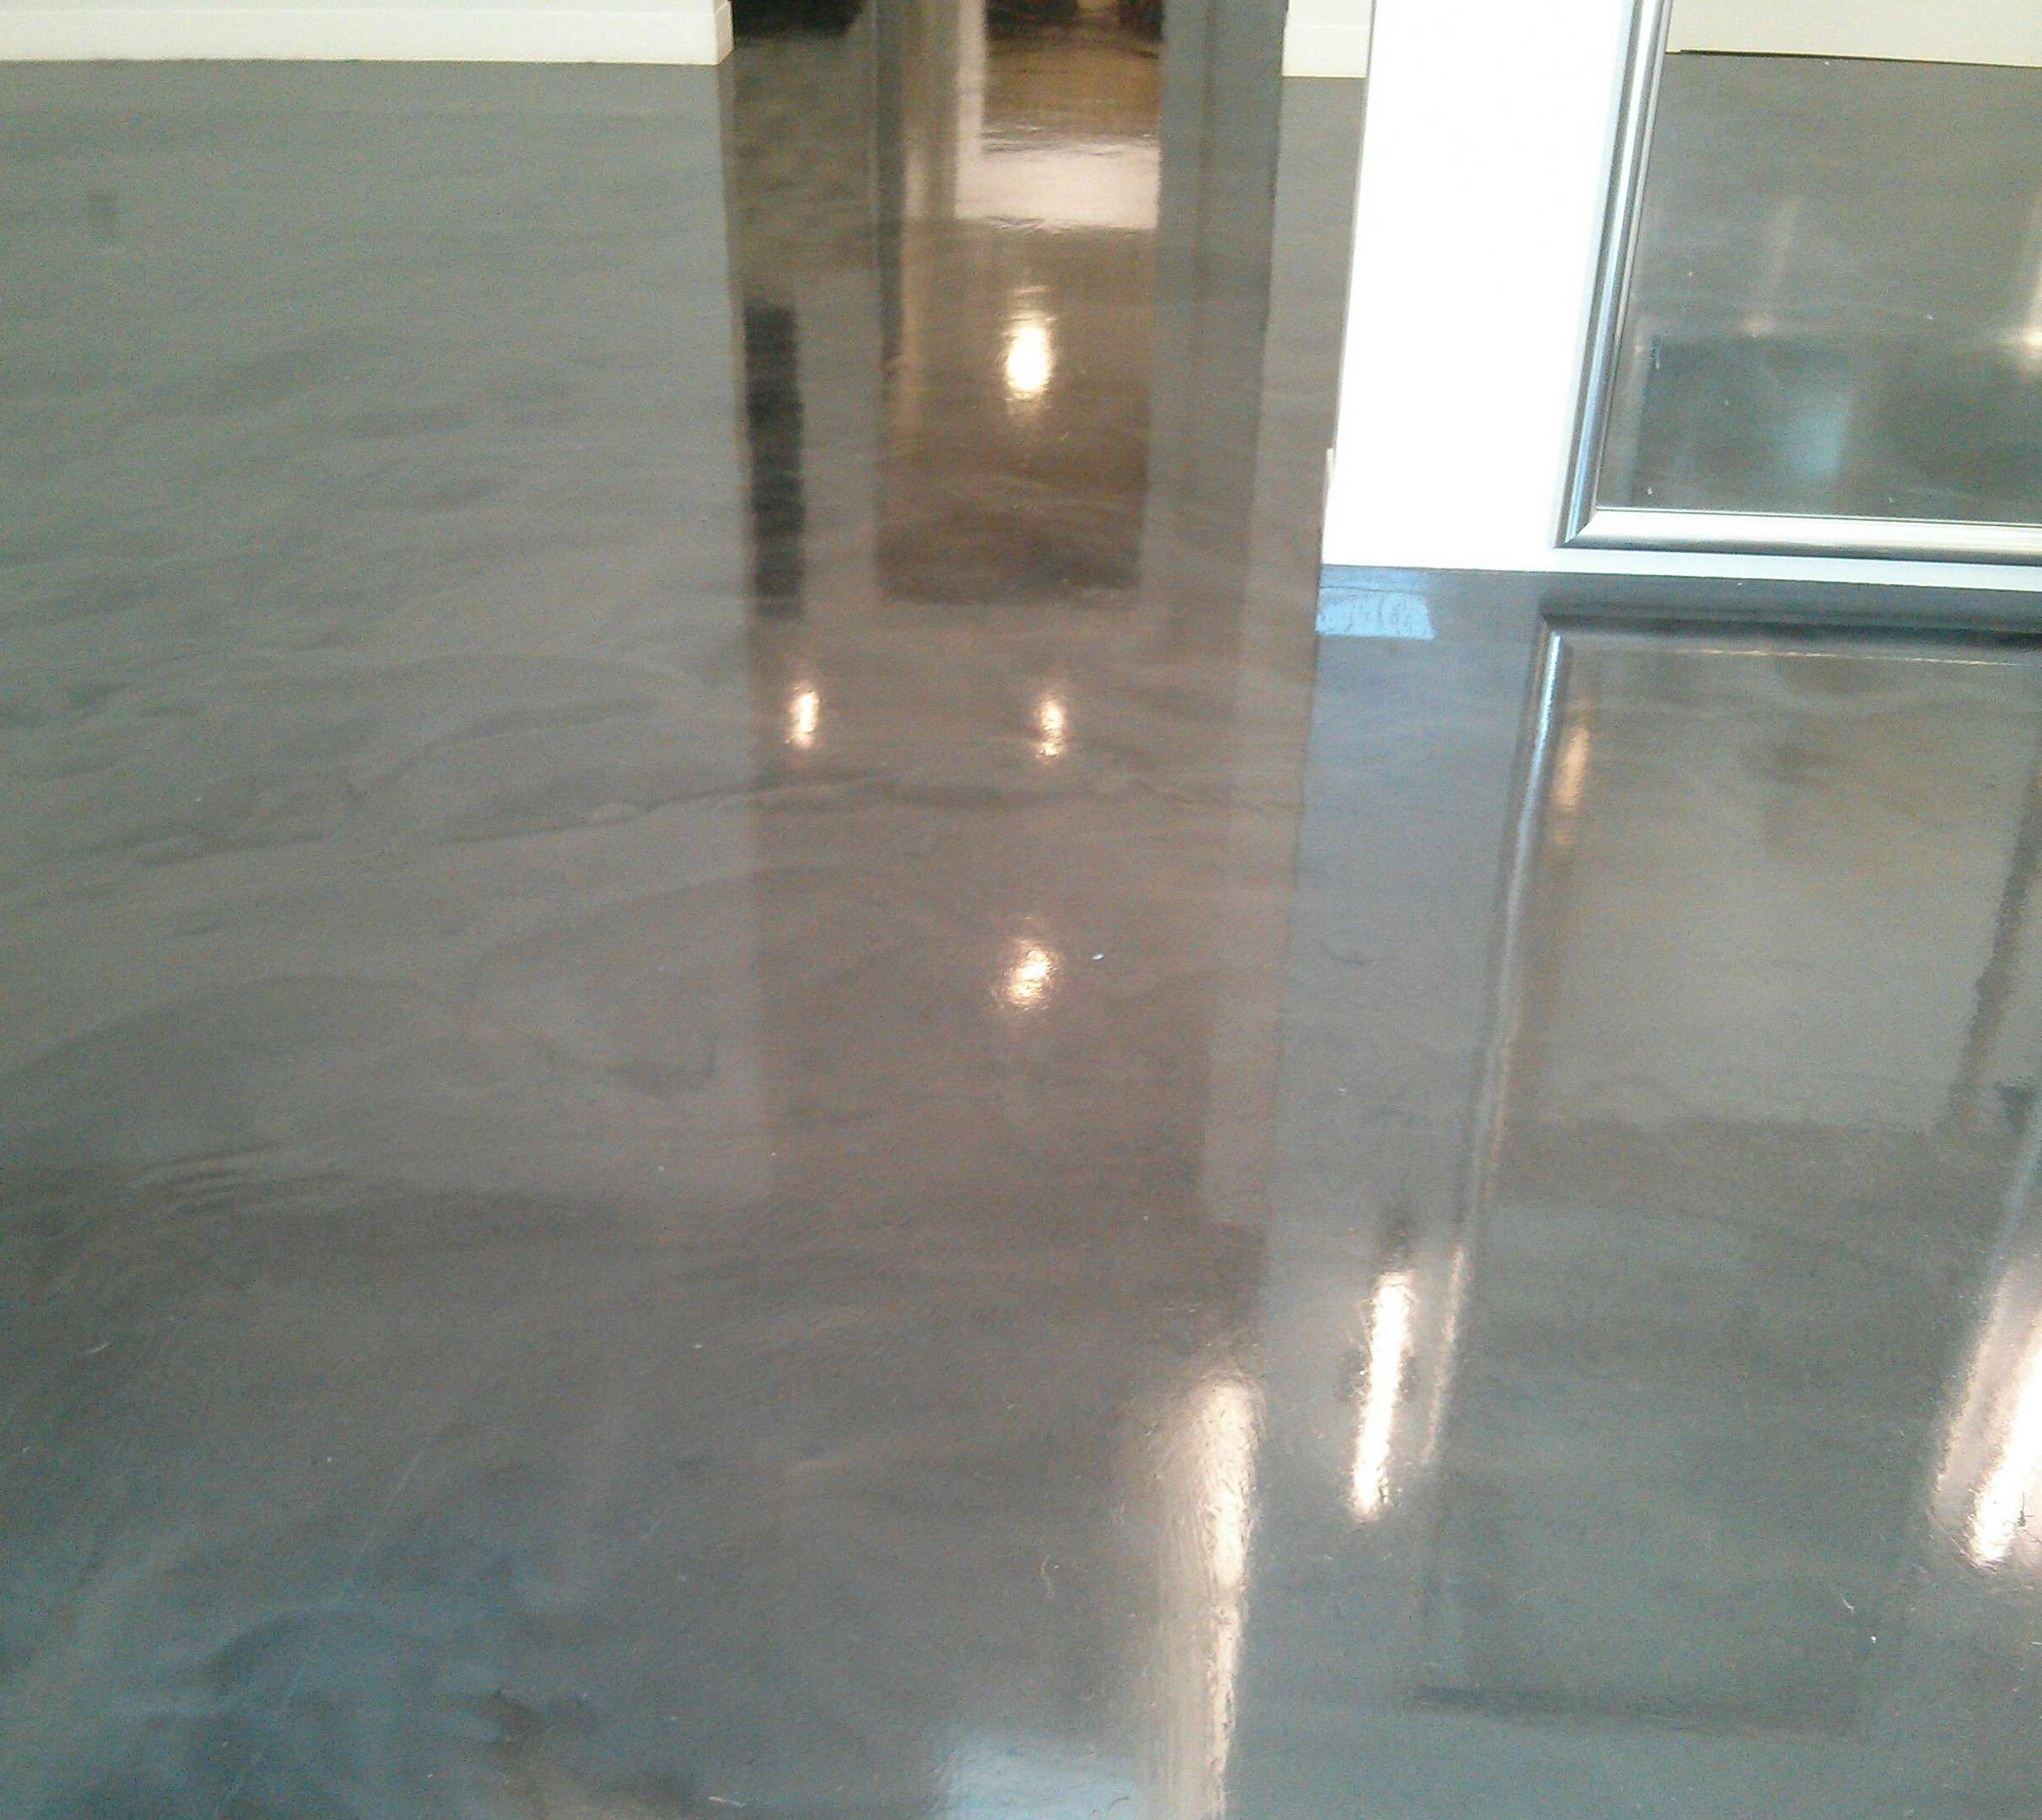 Clear Coat Cement : Polished concrete floor gets much needed scrub and recoat